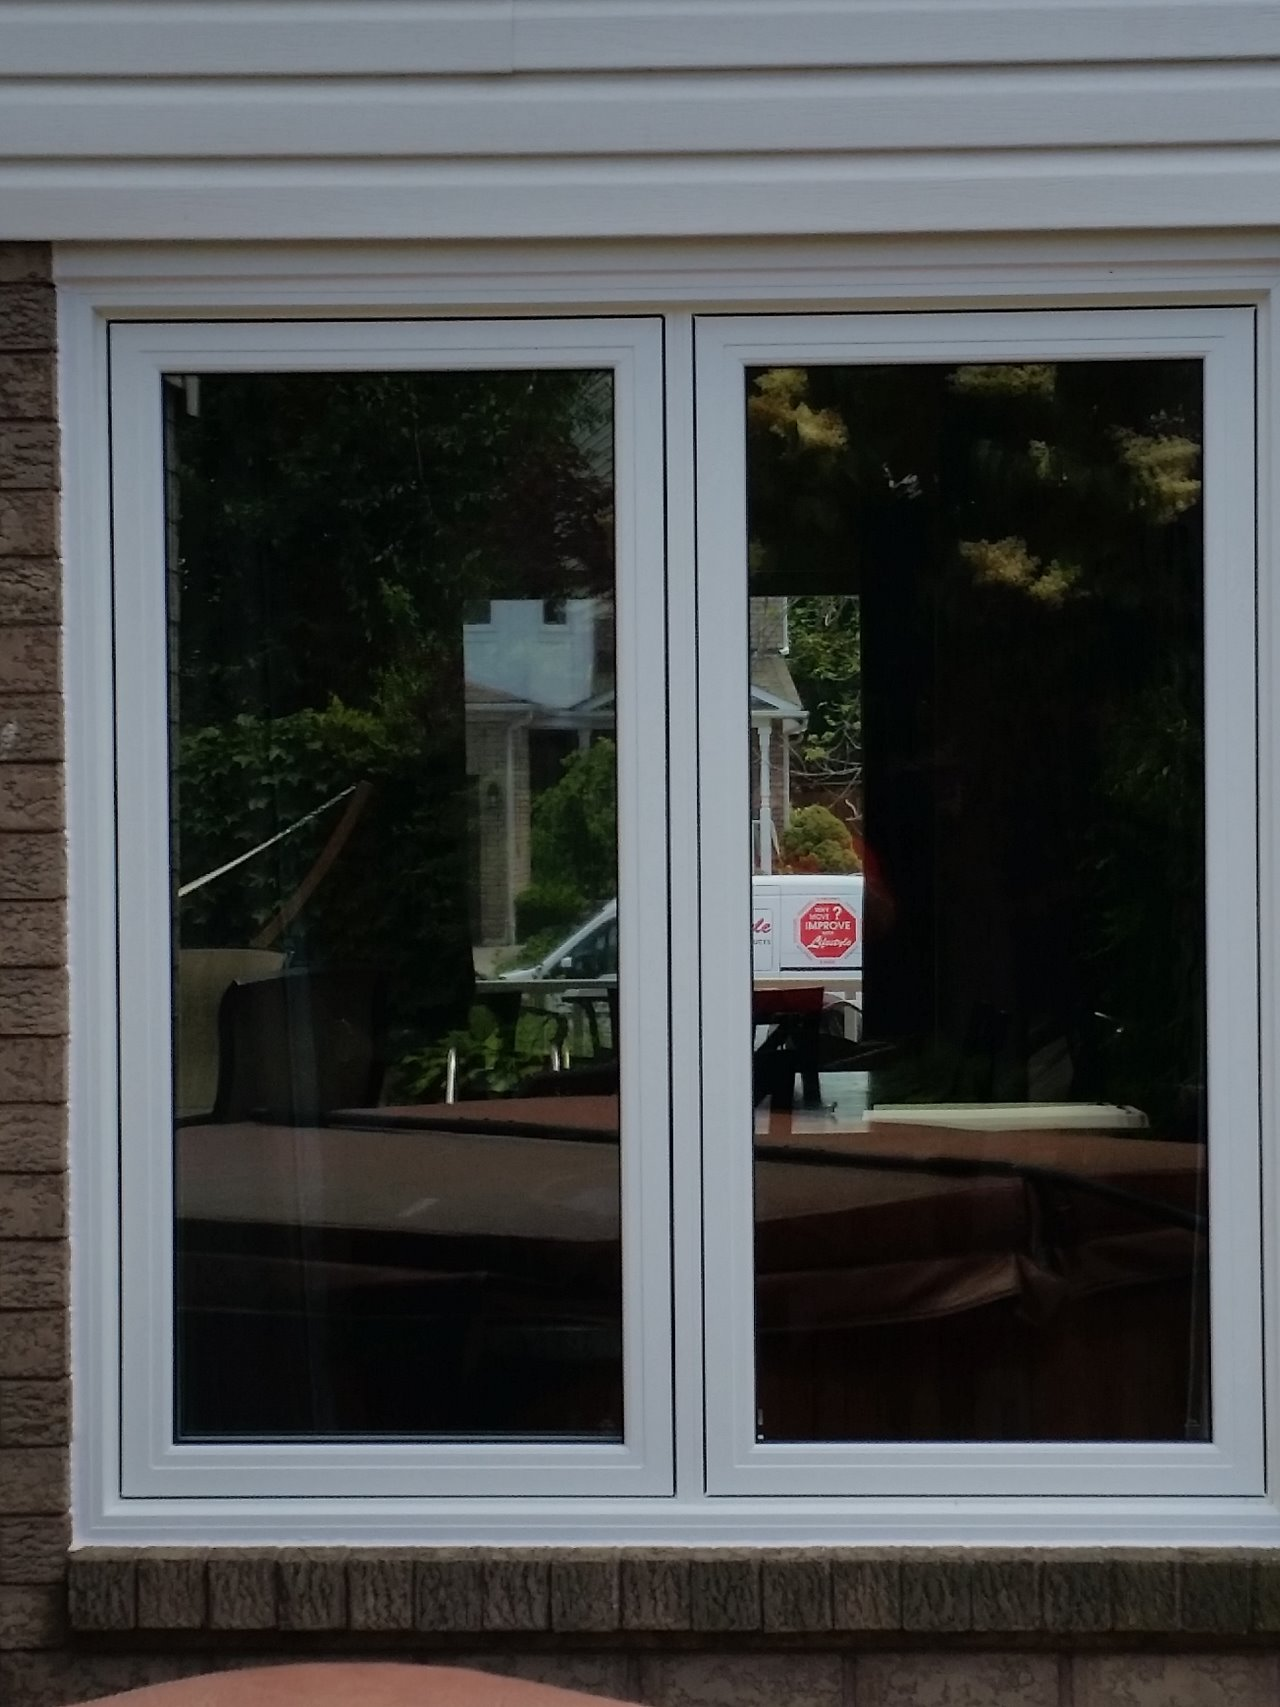 Windows highest rated energy efficient windows in ontario for Energy efficient replacement windows